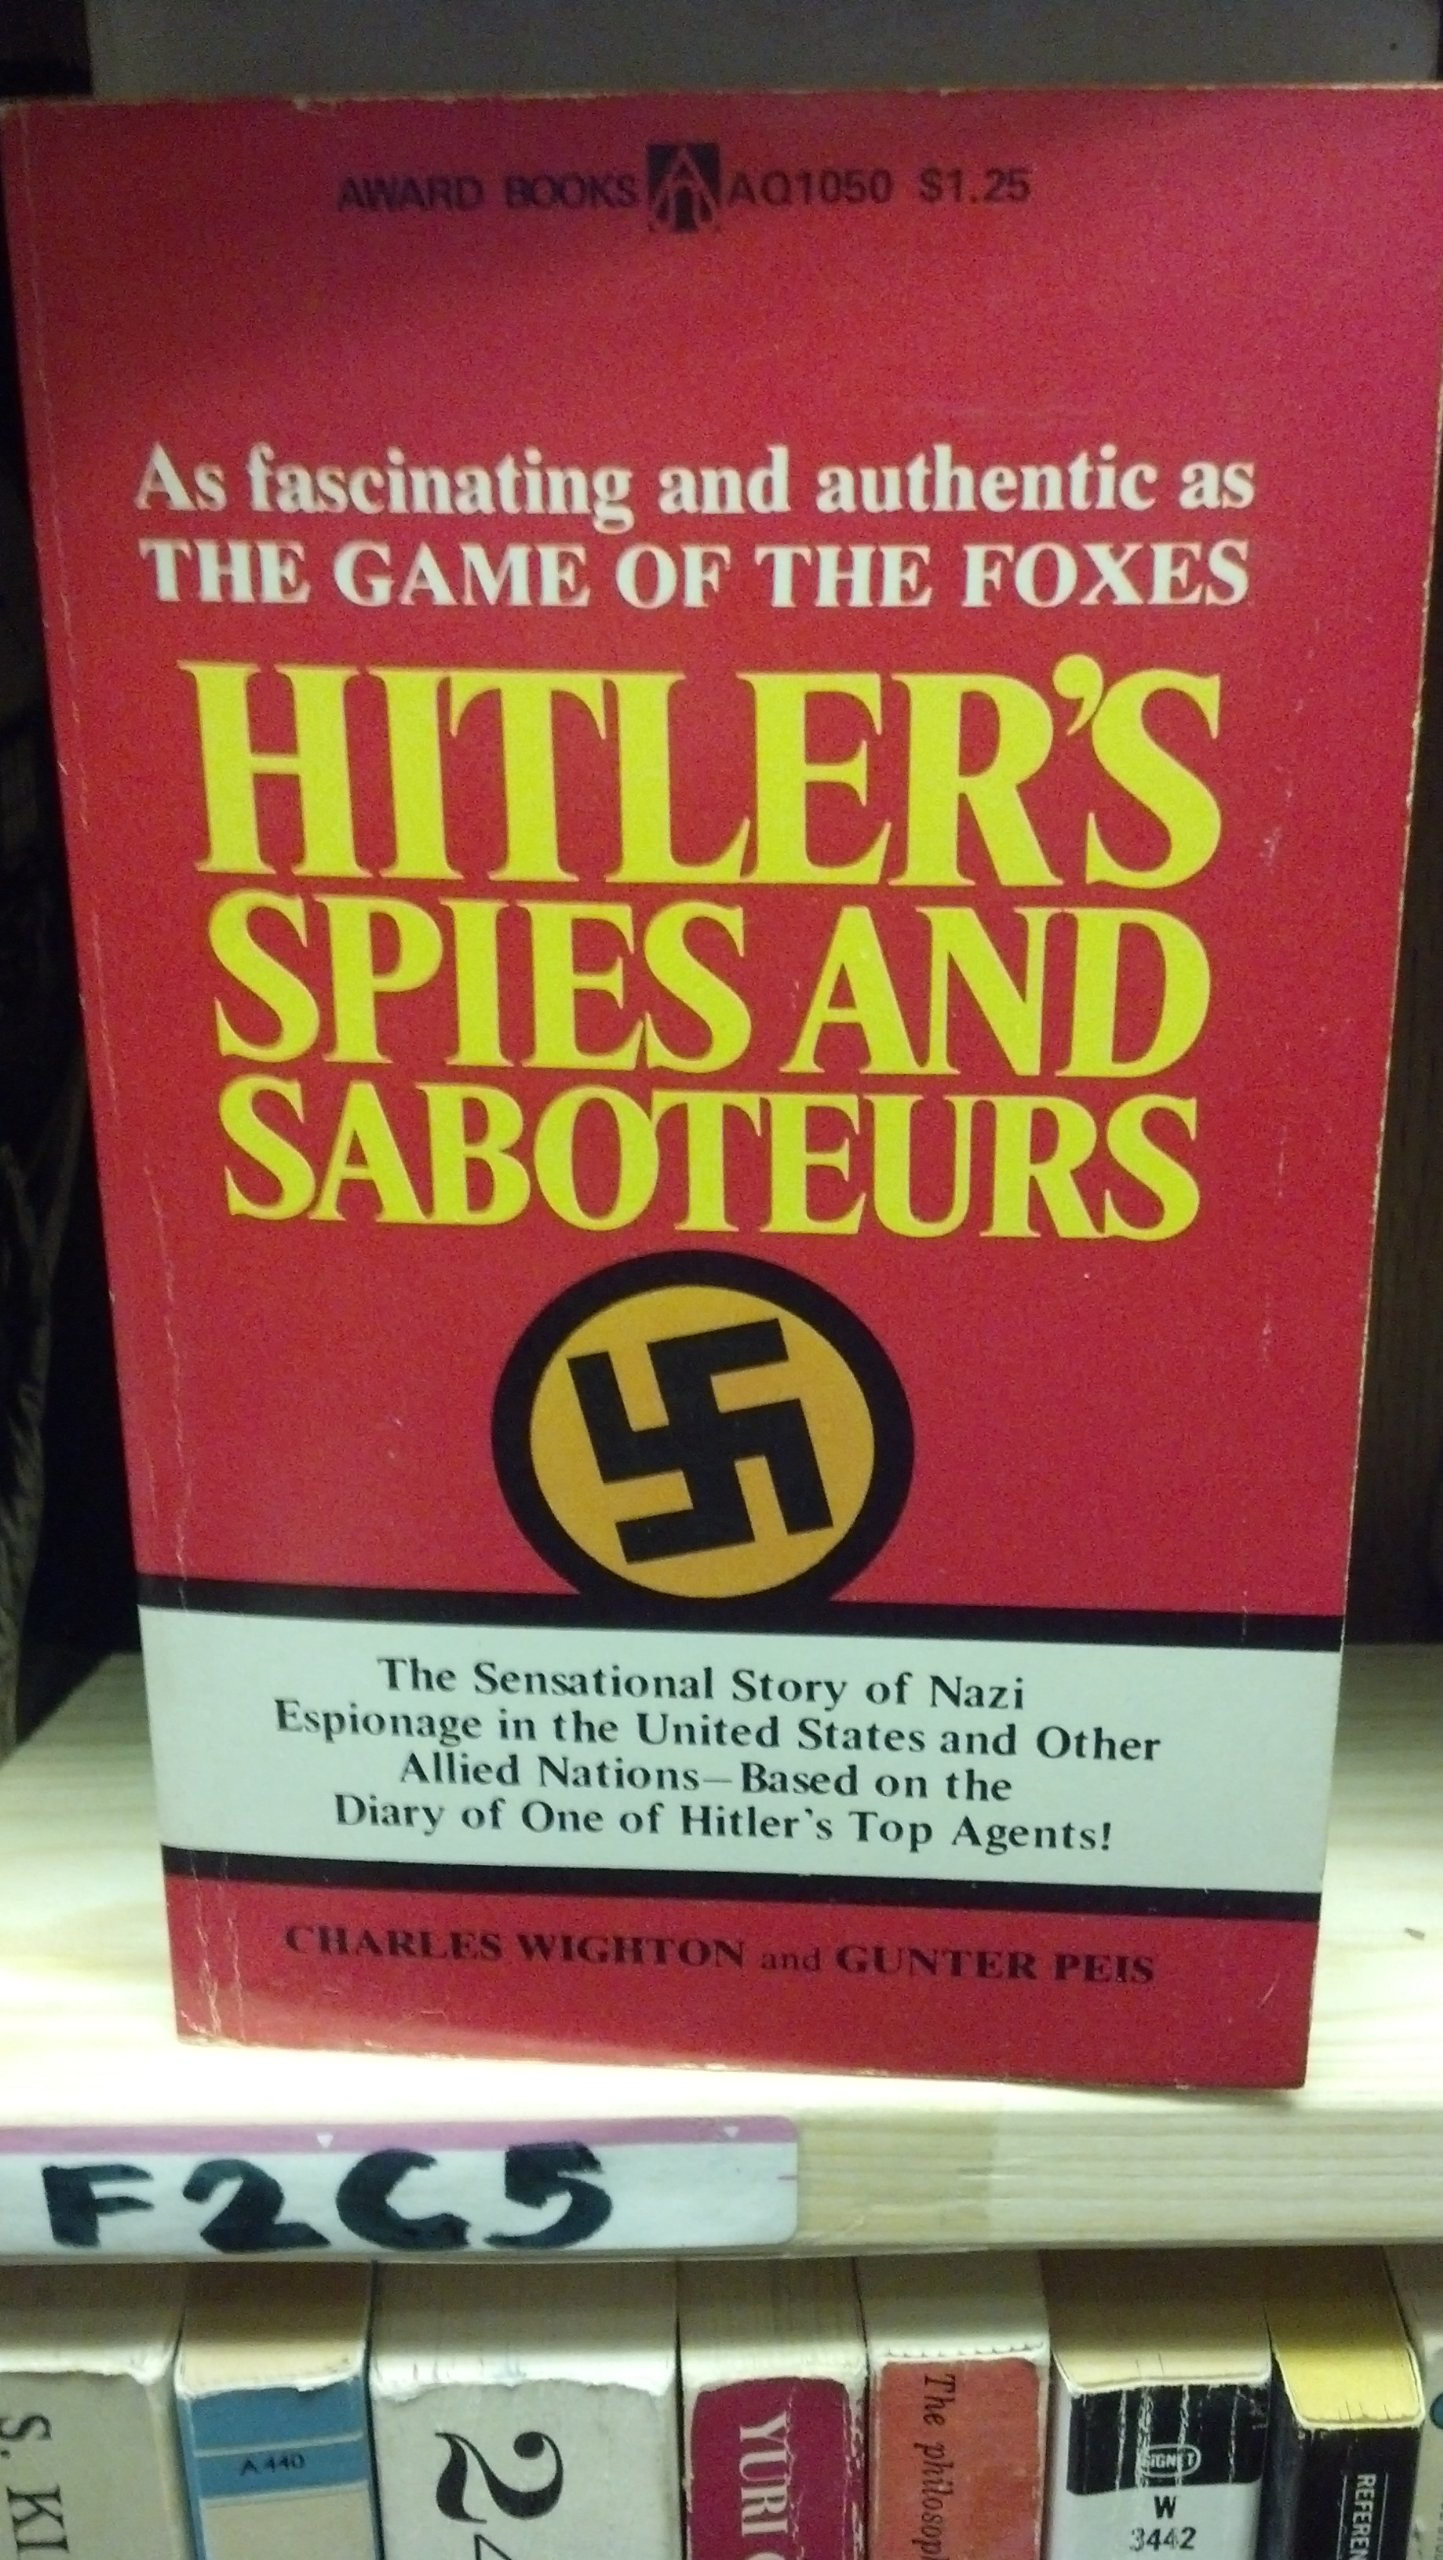 Hitler's spies and saboteurs; based on the German secret service war diary of General Lahousen, Wighton, Charles; Peis, Günter